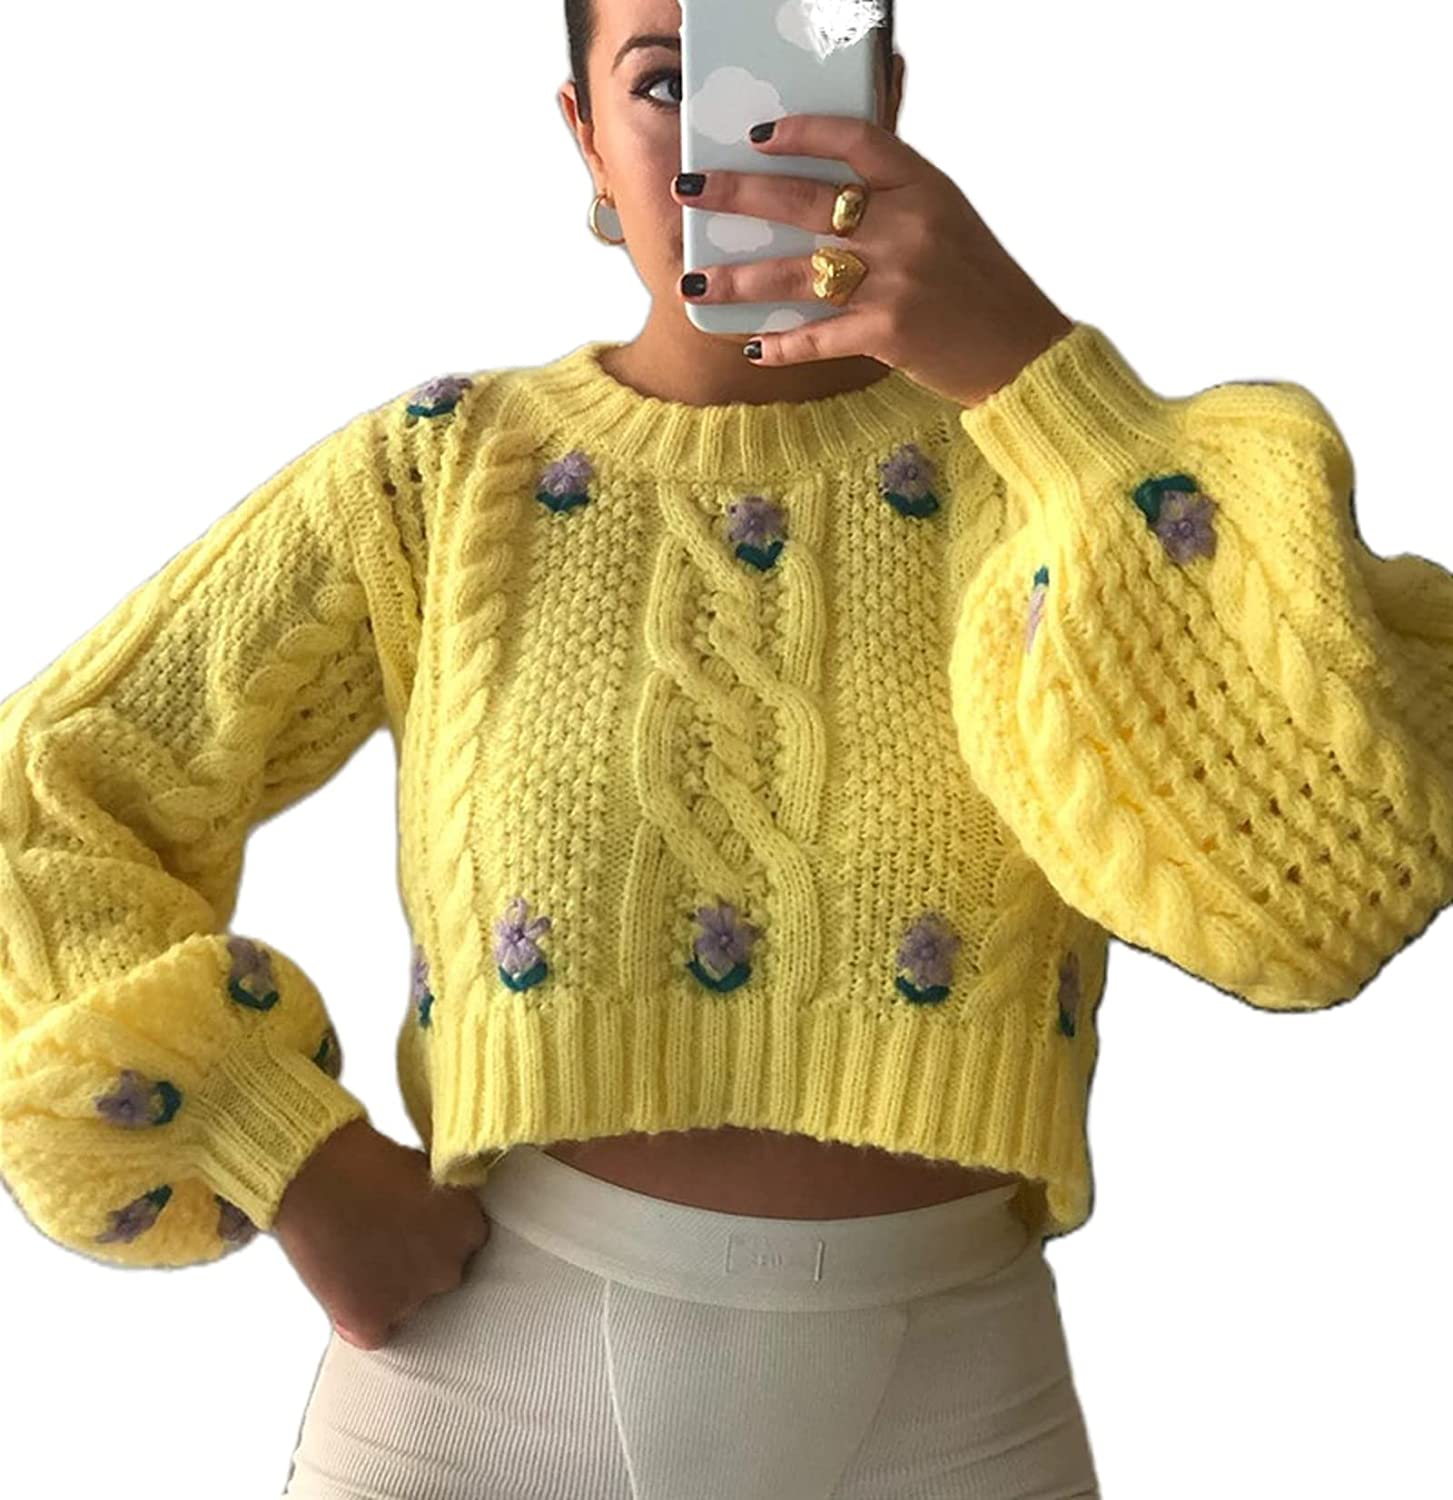 Women Crew Neck Lantern Sleeve Pullover Sweater Tops Cute Cable Knit Crop Sweater Puff Sleeve Casual Loose Blouse